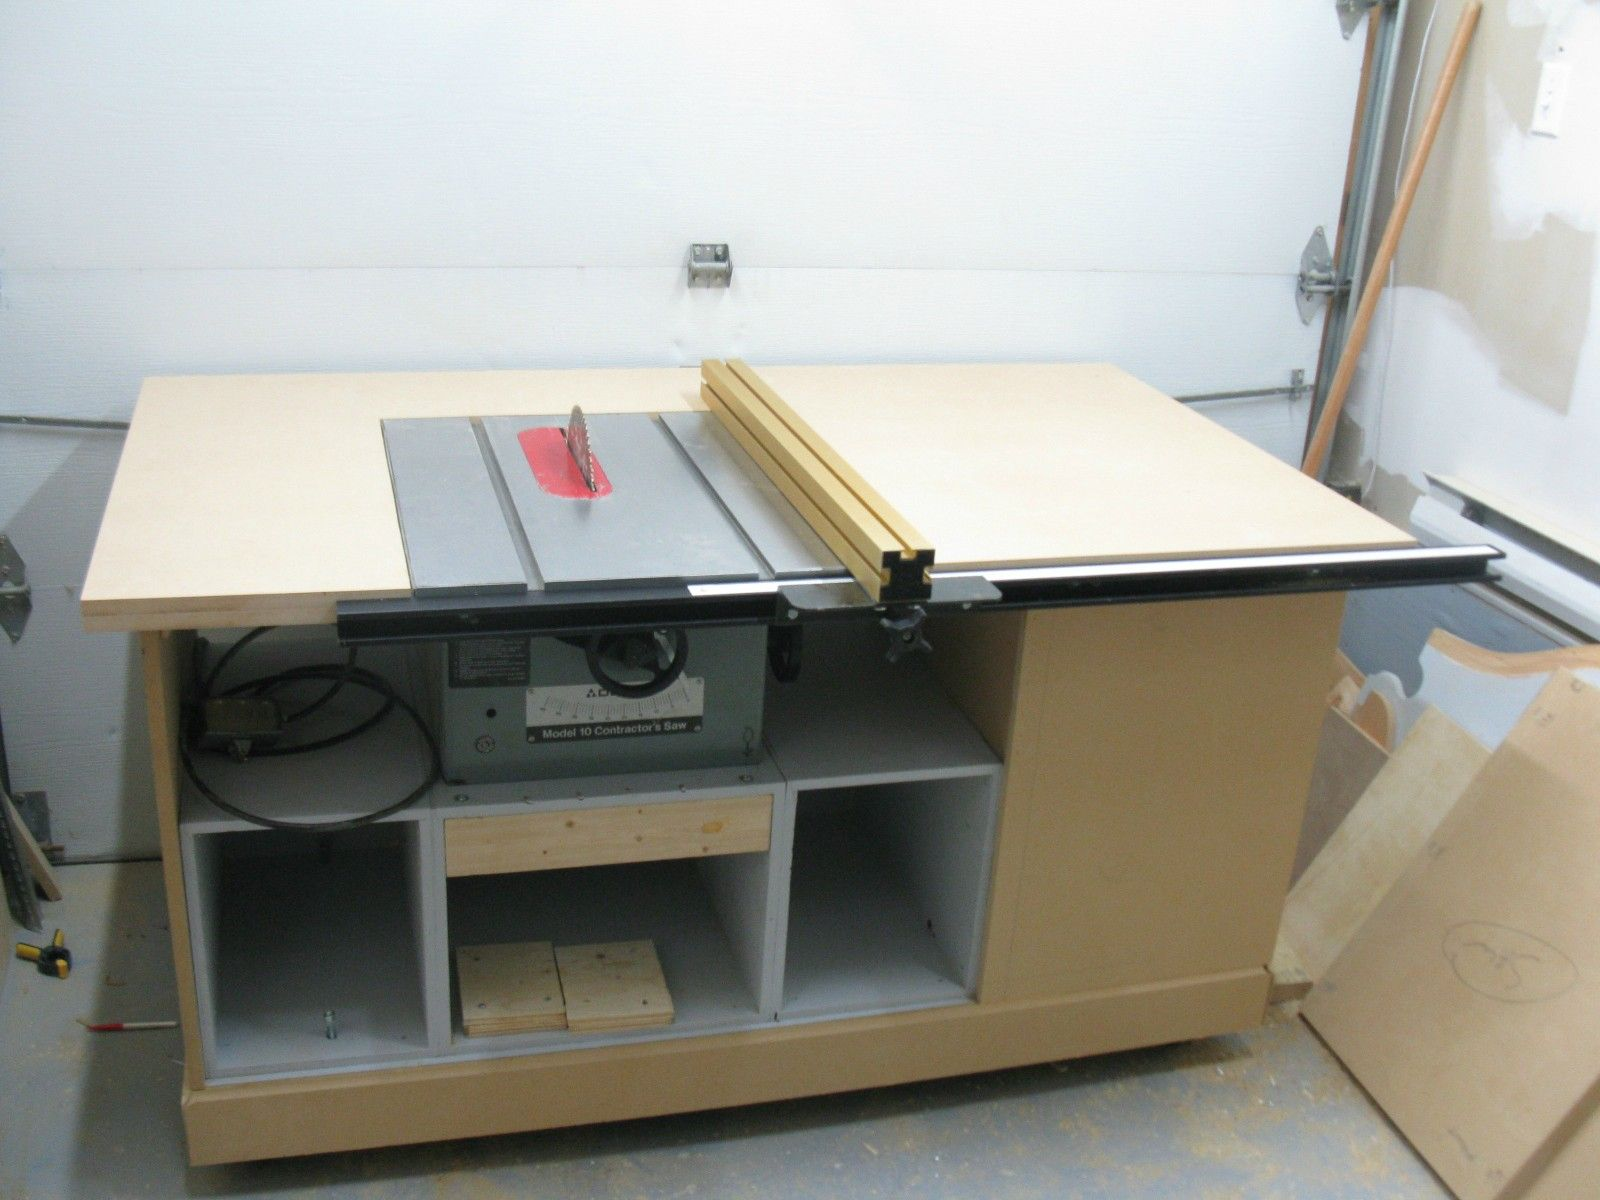 An Old Delta Contractor Daw To Refurbish And A DIY Work Table Top With The  Accu